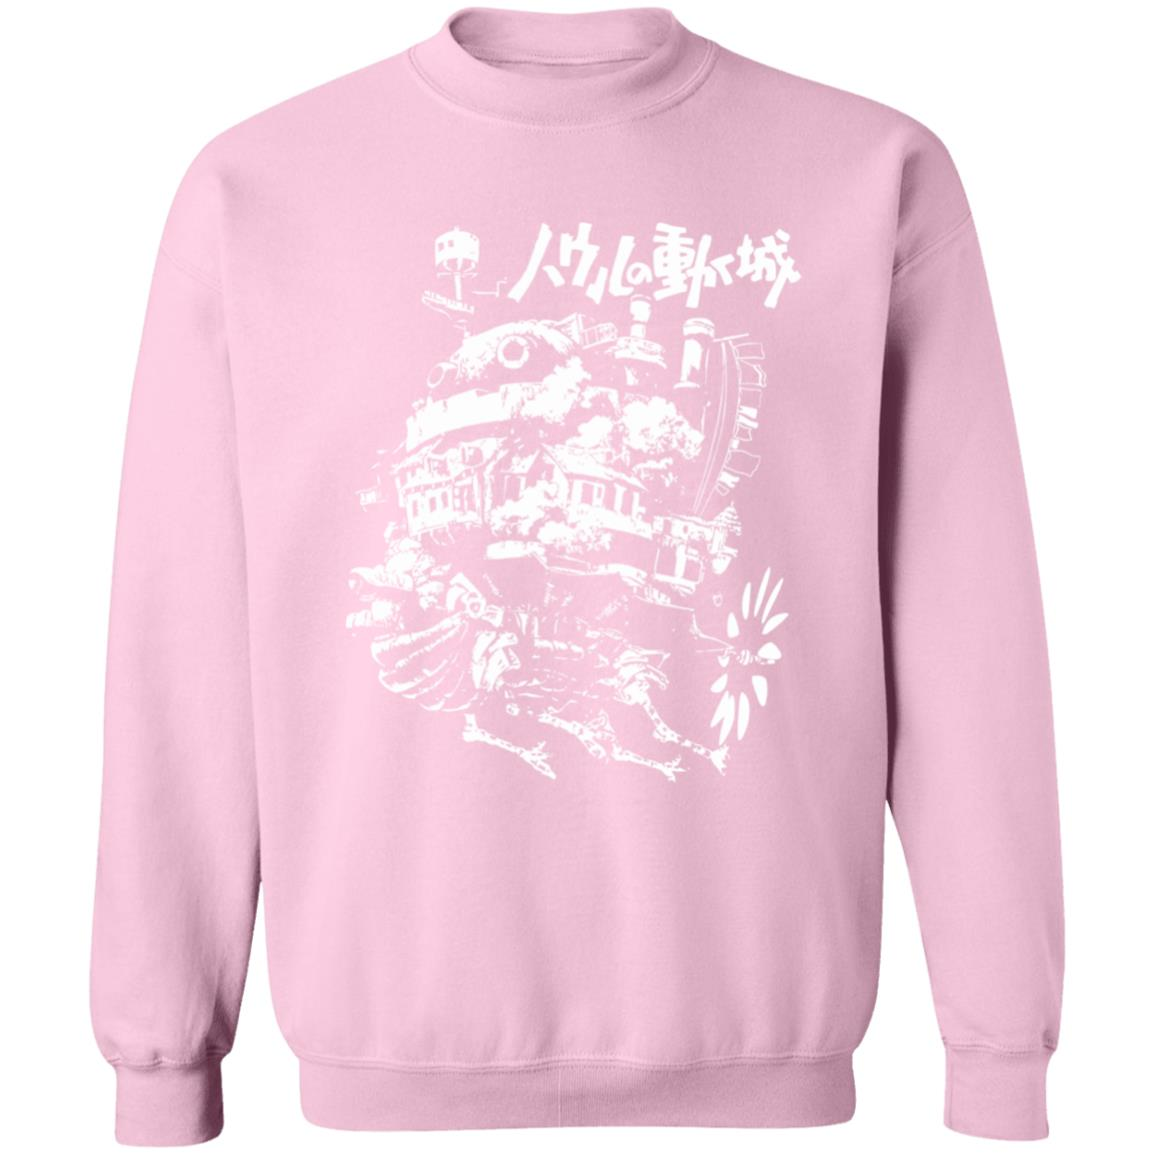 Howl's Castle in Black and White Sweatshirt